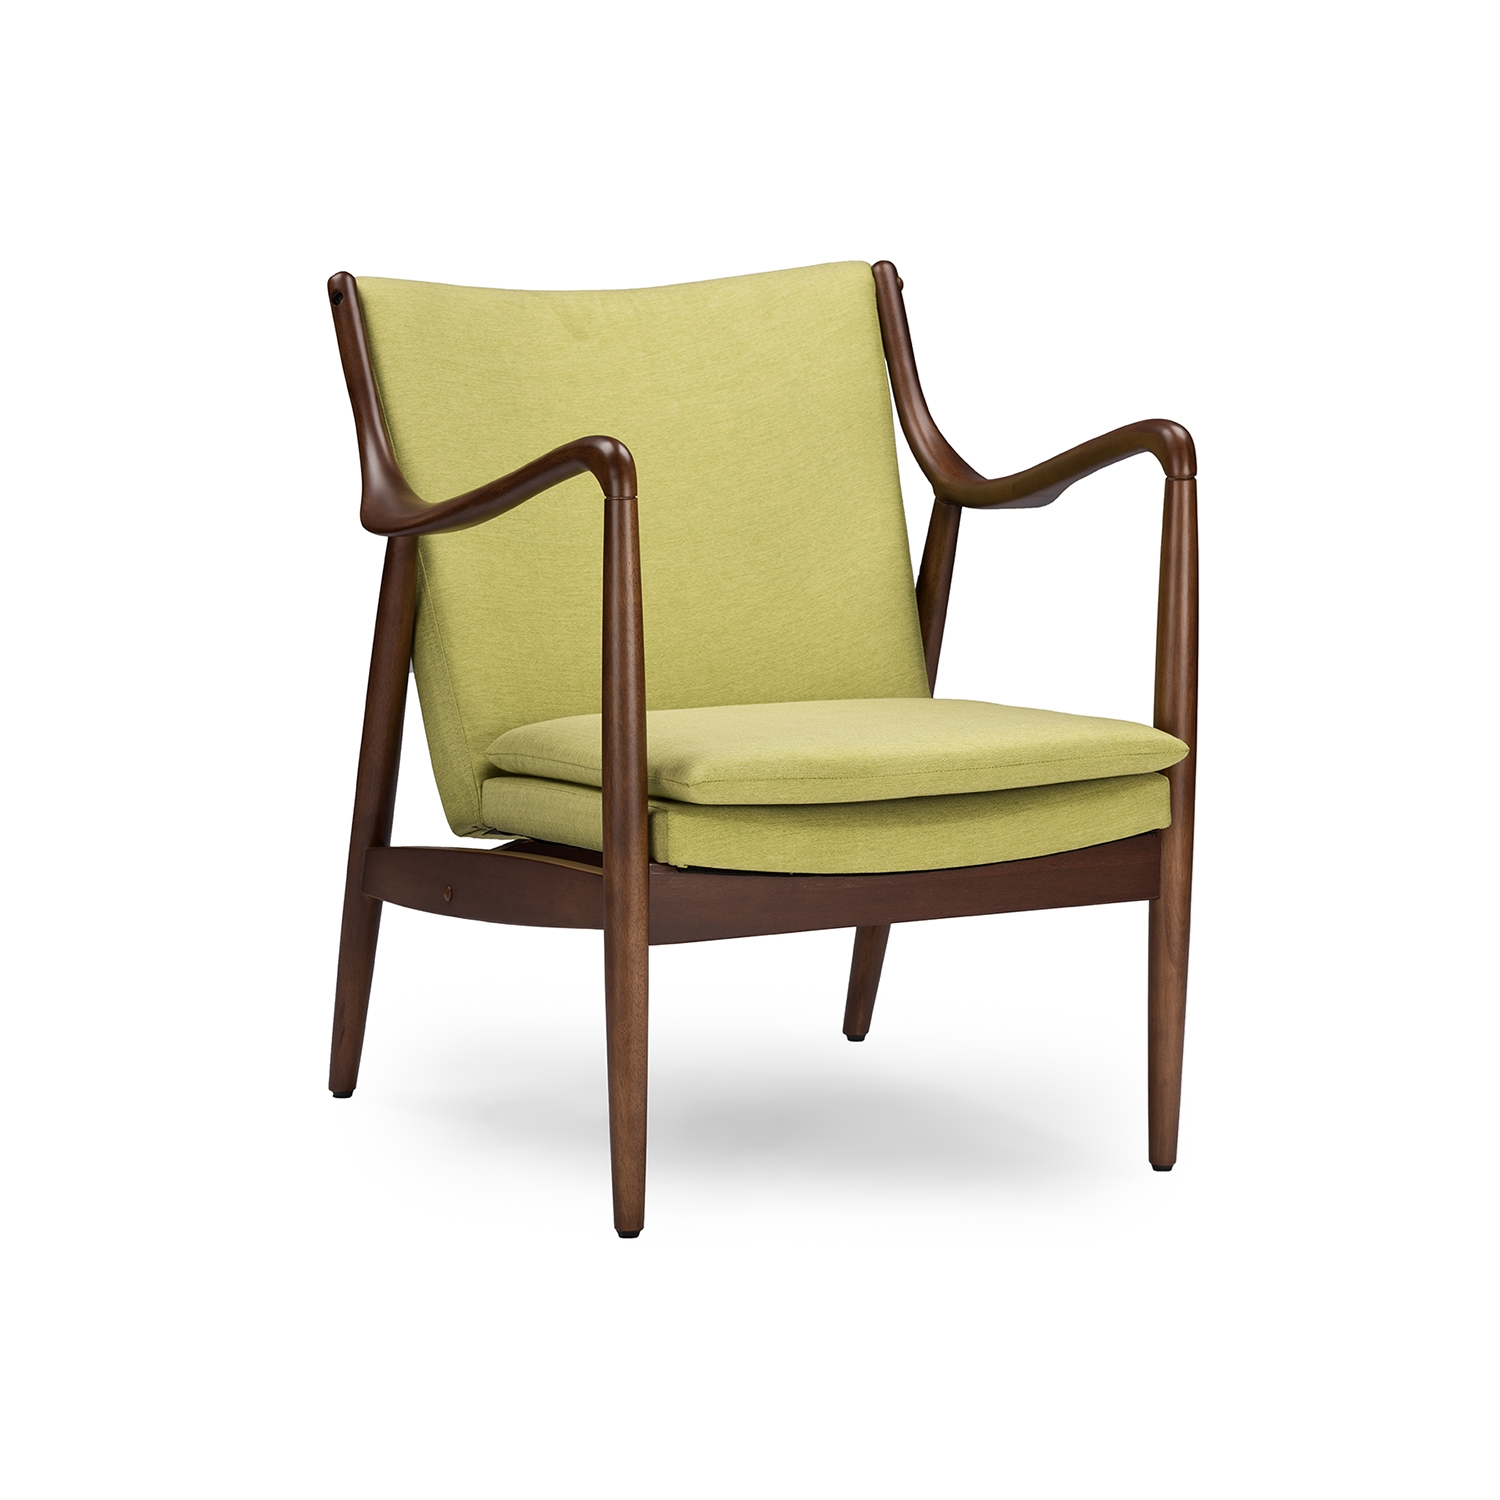 Green Upholstered Chair Baxton Studio Shakespeare Mid Century Modern Retro Green Fabric